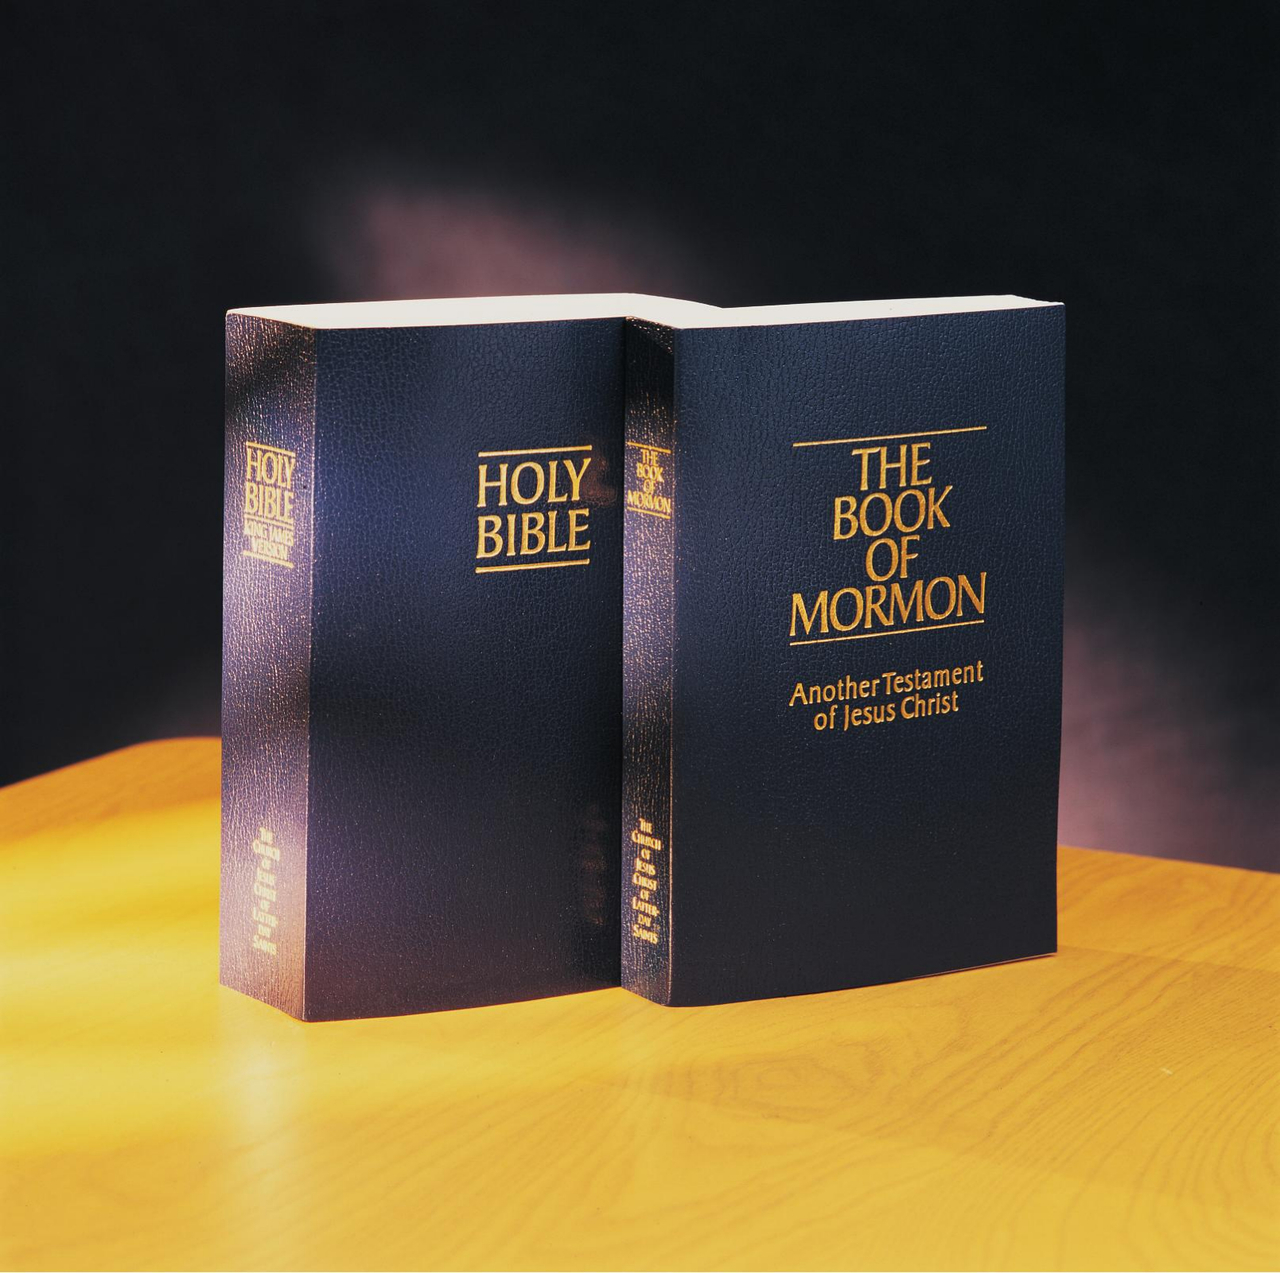 How The Bible and The Book of Mormon Work Together